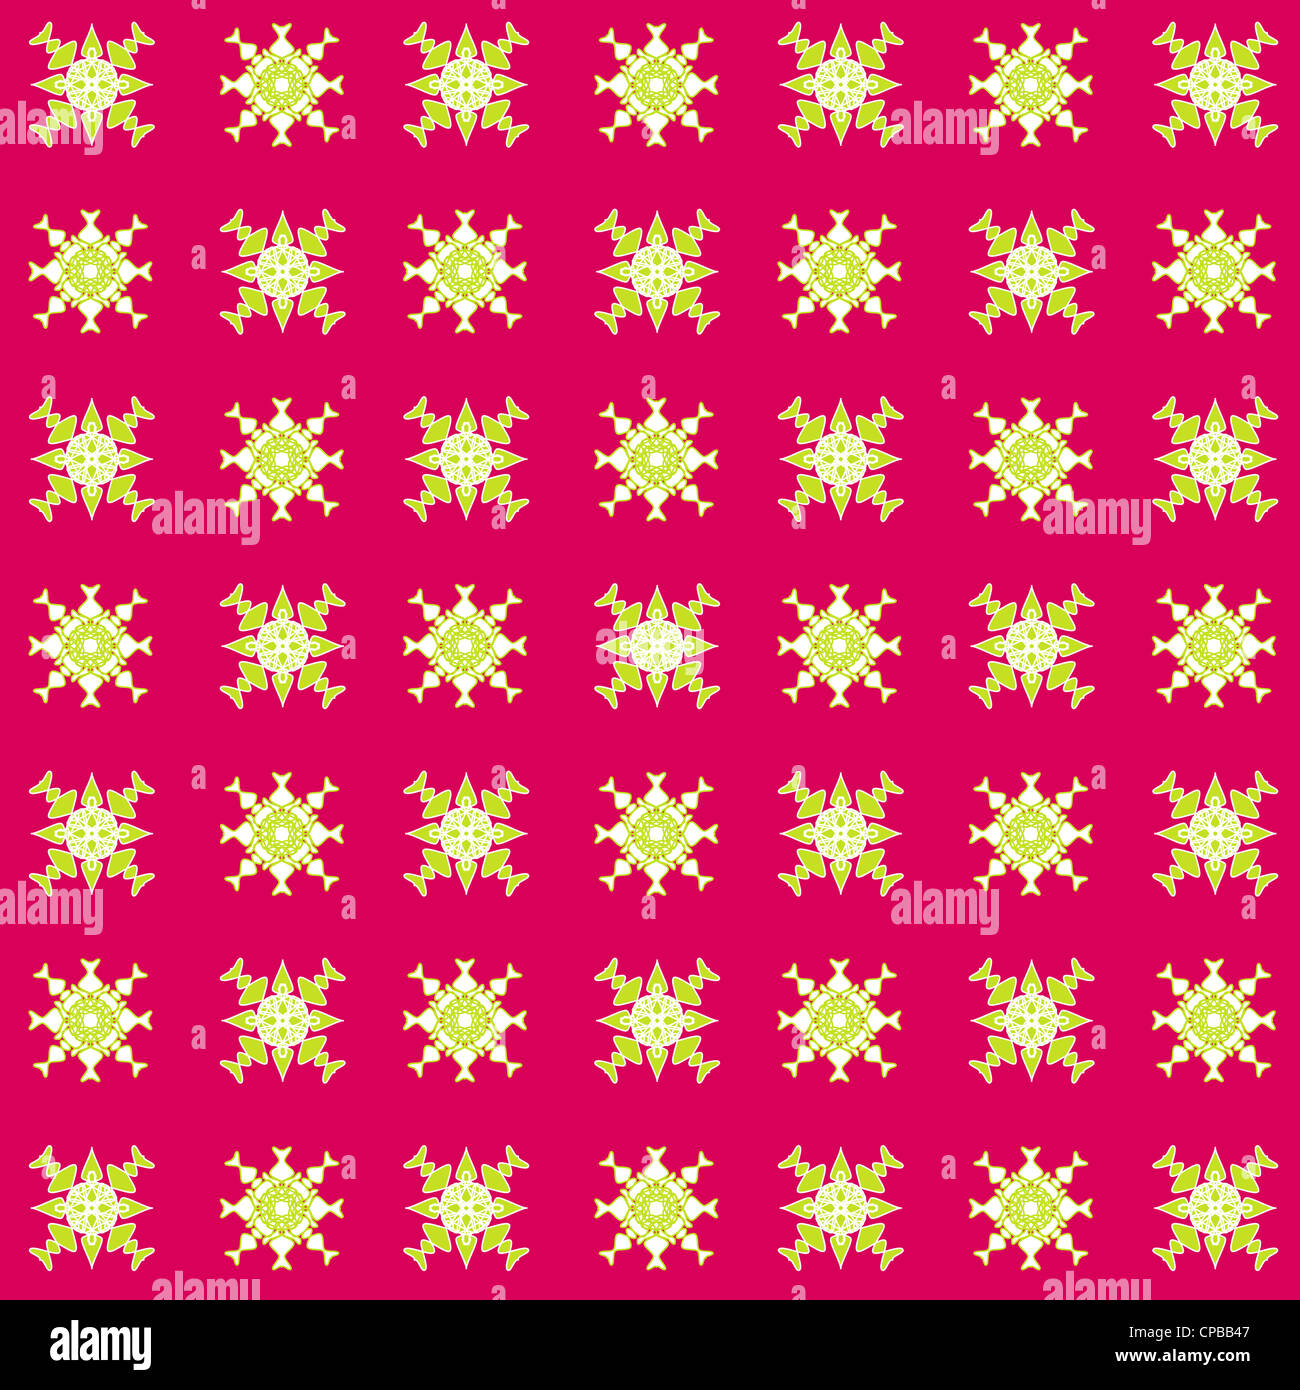 Artistic seamless pattern in green on pink background Stock Photo